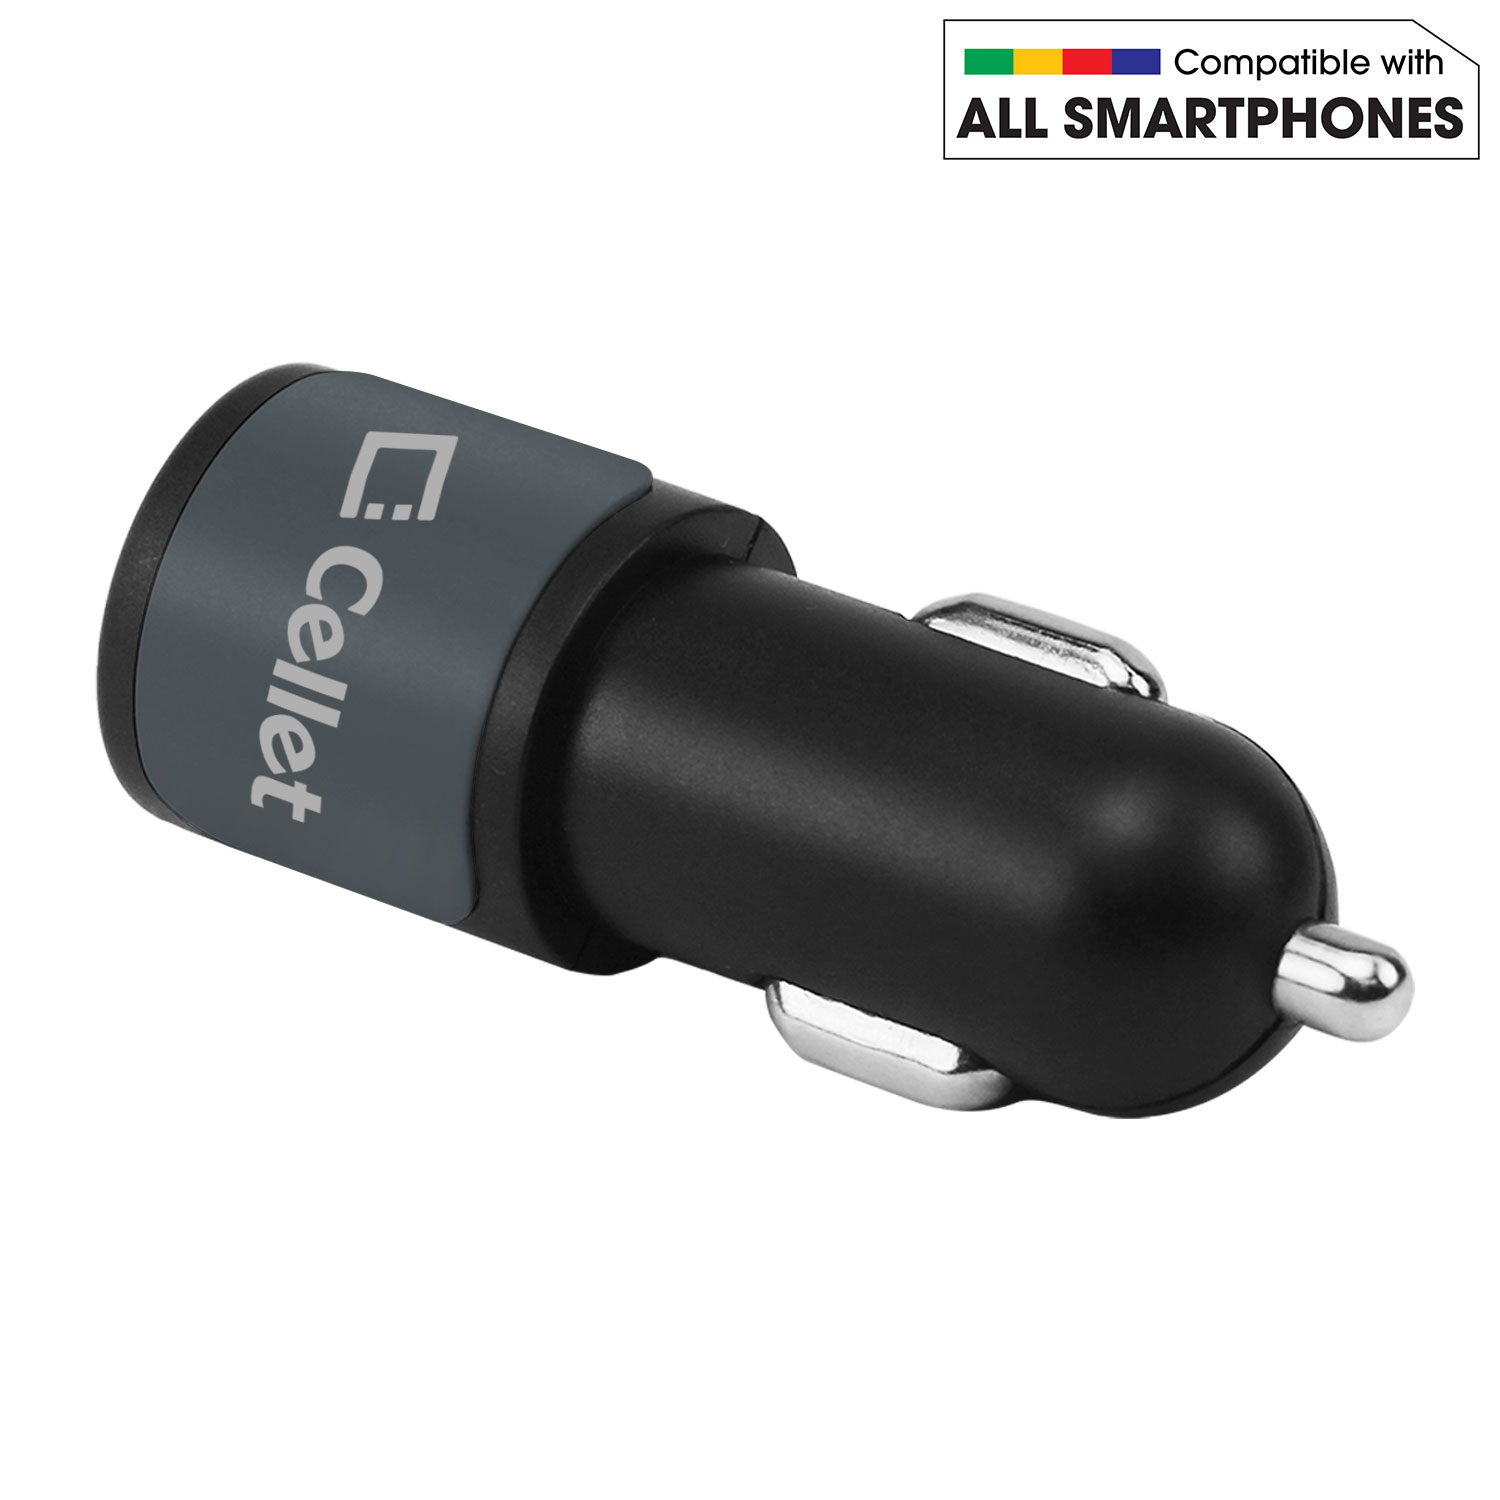 LG Tribute Royal Micro-USB Car Charger Black 10ft Black Braided Cable